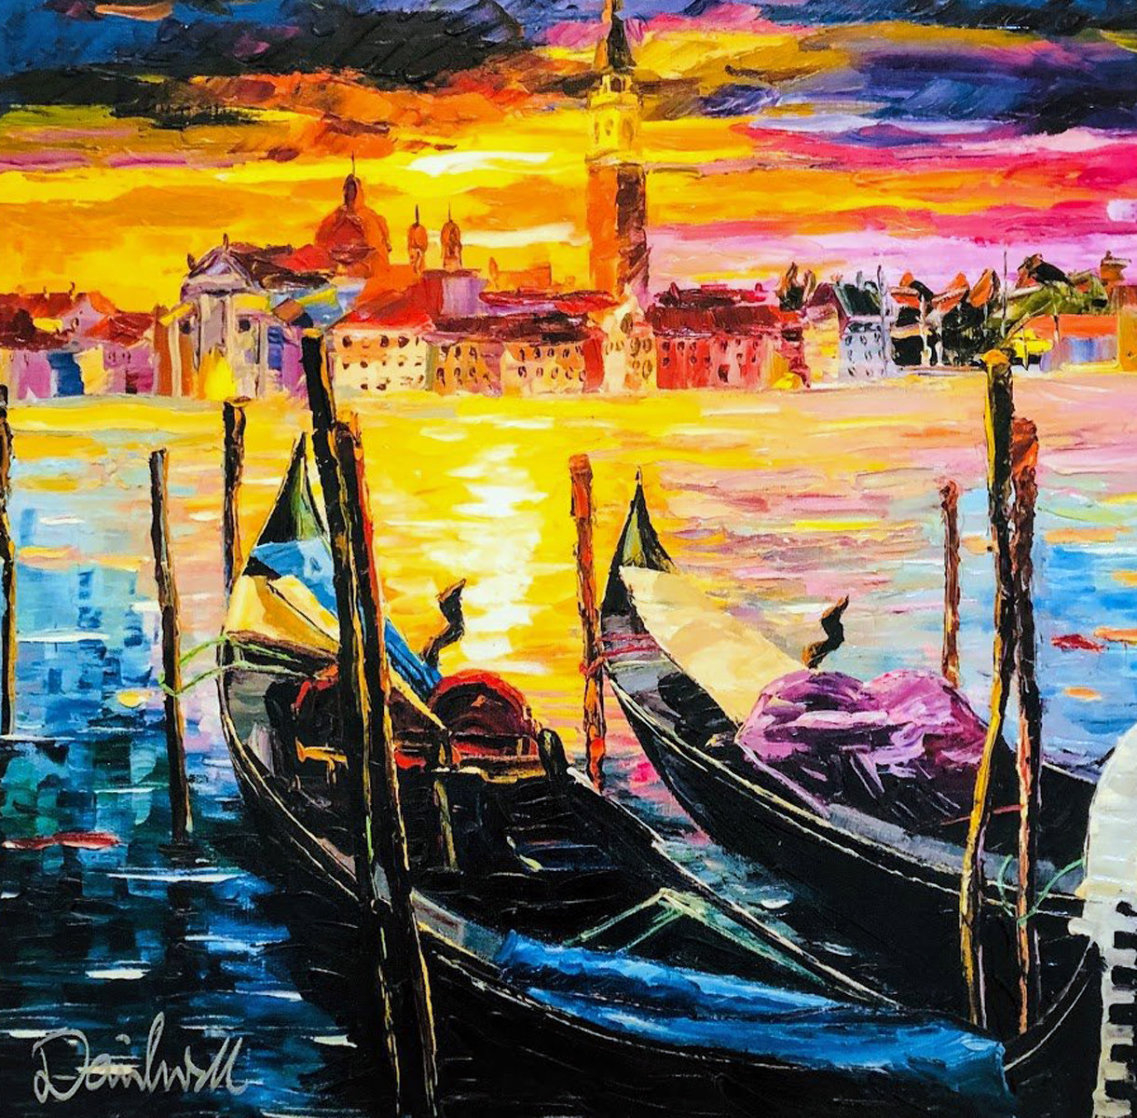 Stillness of Venice 2017 Embellished Limited Edition Print by Daniel Wall